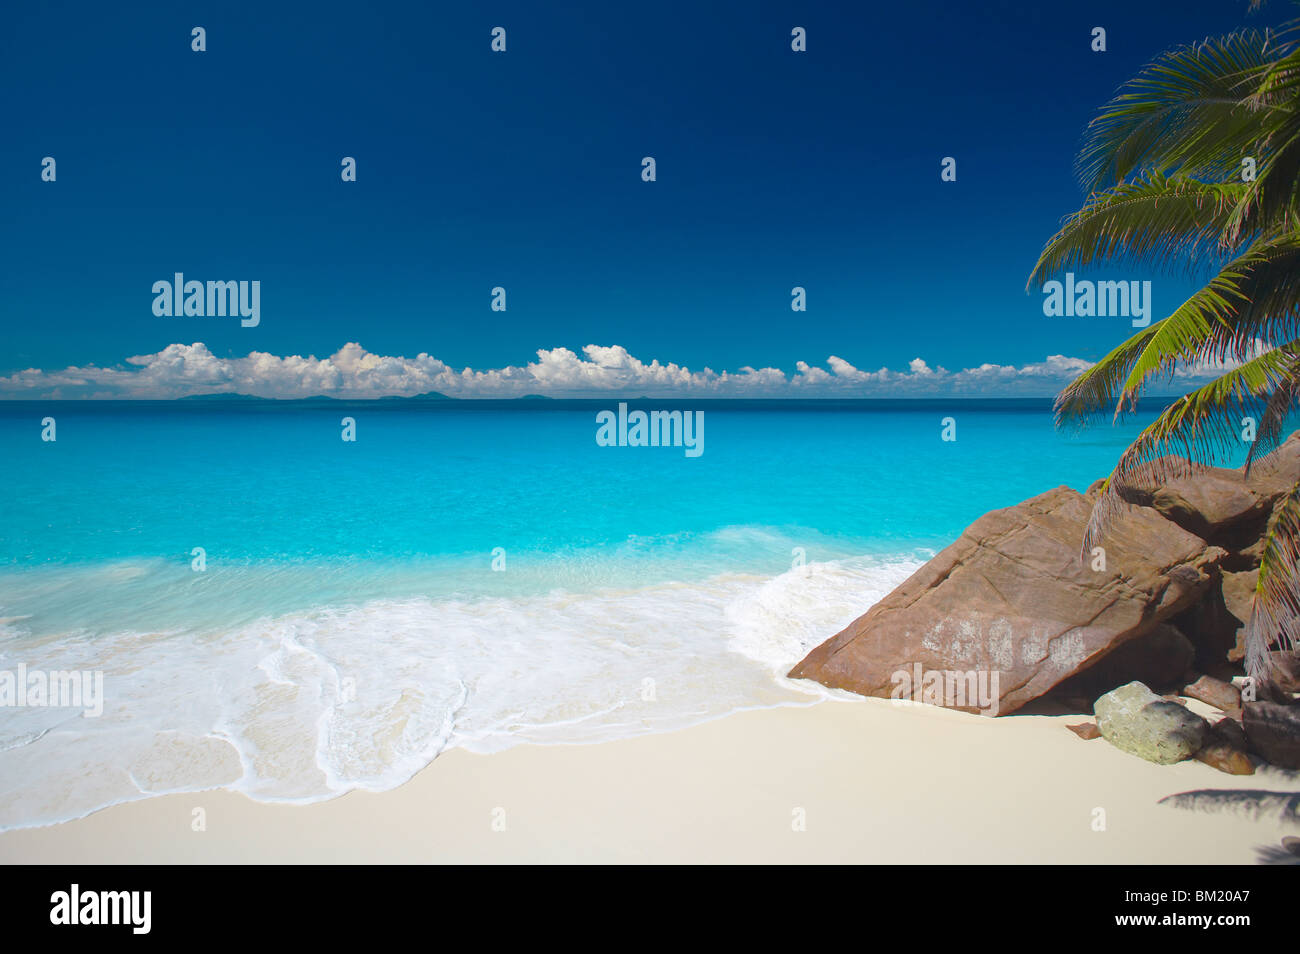 Tropical beach, Seychelles, Indian Ocean, Africa - Stock Image